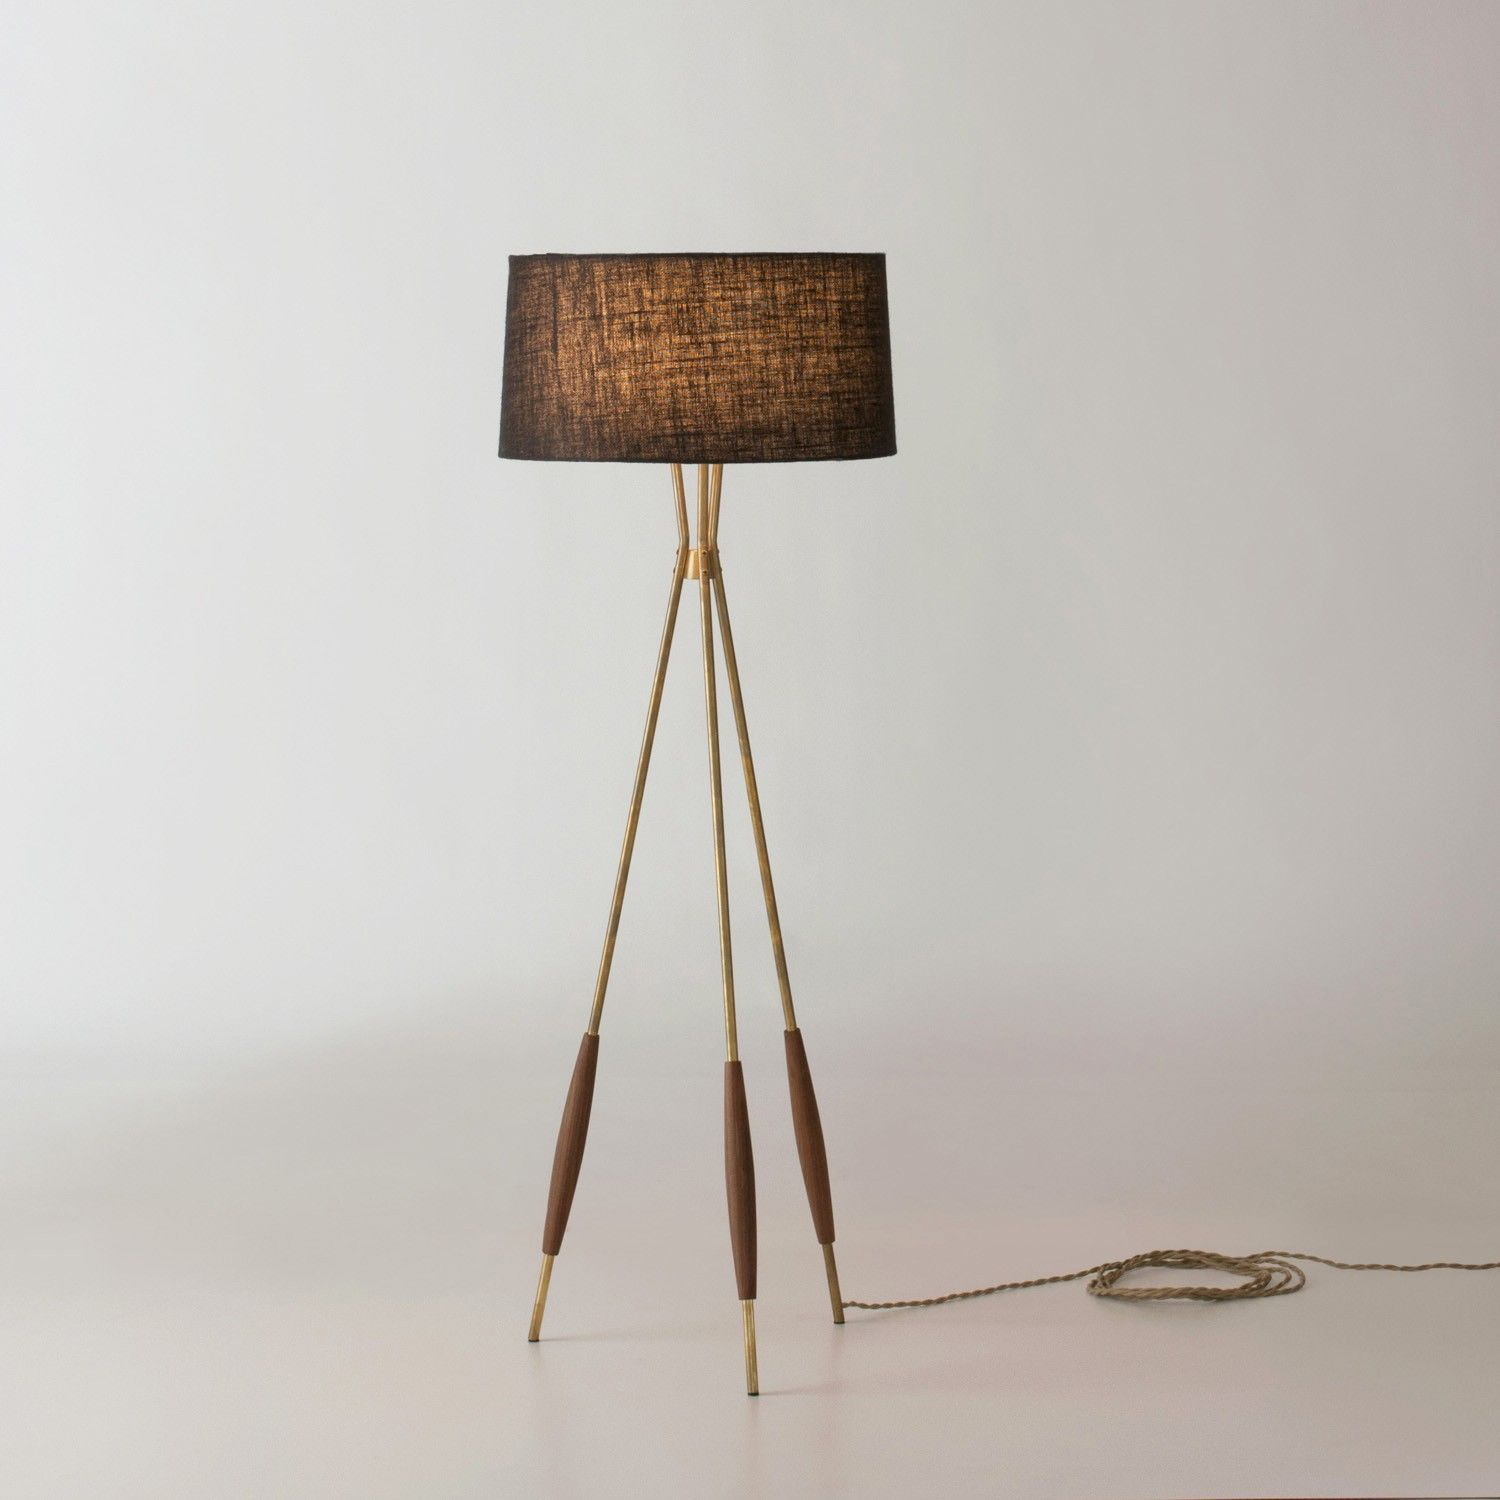 Floor Lamps Tripod Floor Lamps Vintage Floor Lamp Modern Floor Lamps